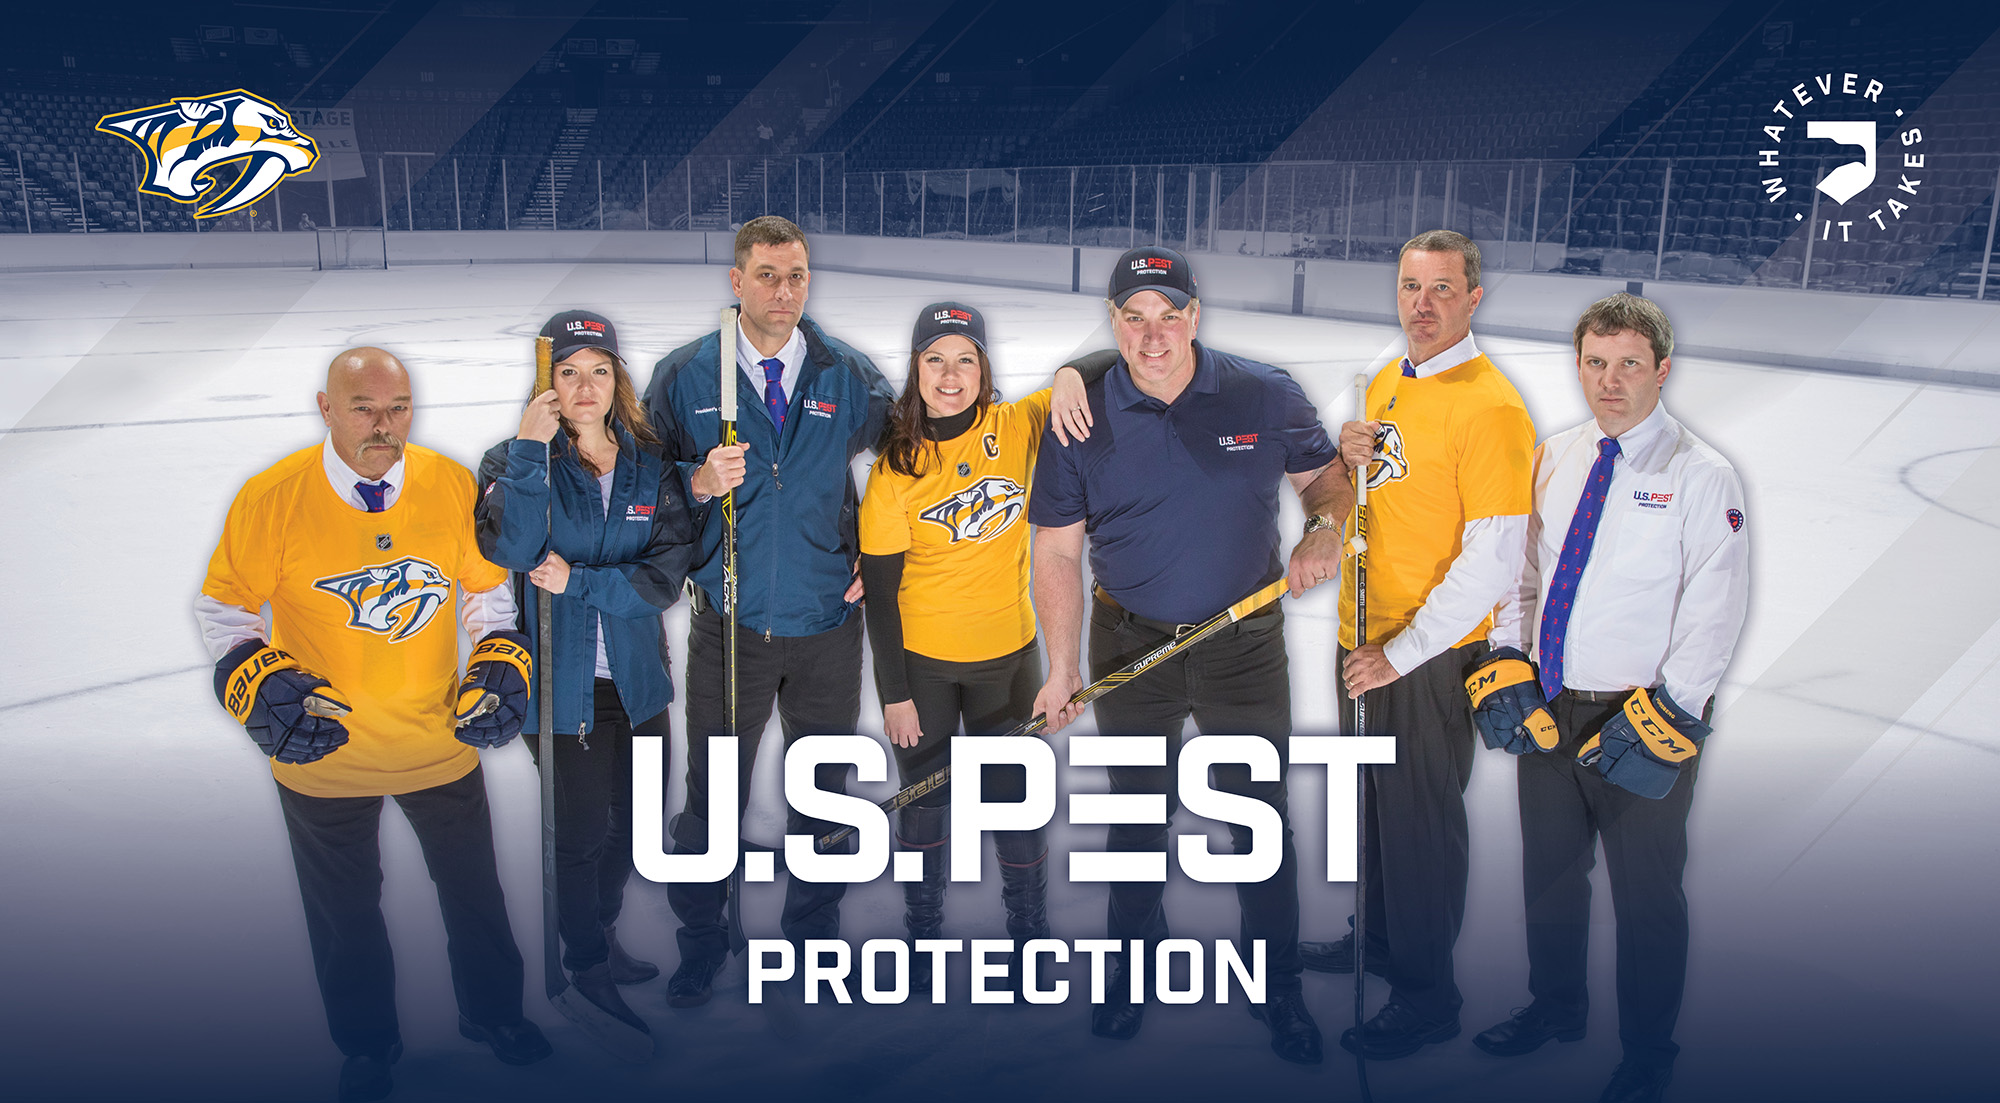 Preds Pest Press Social